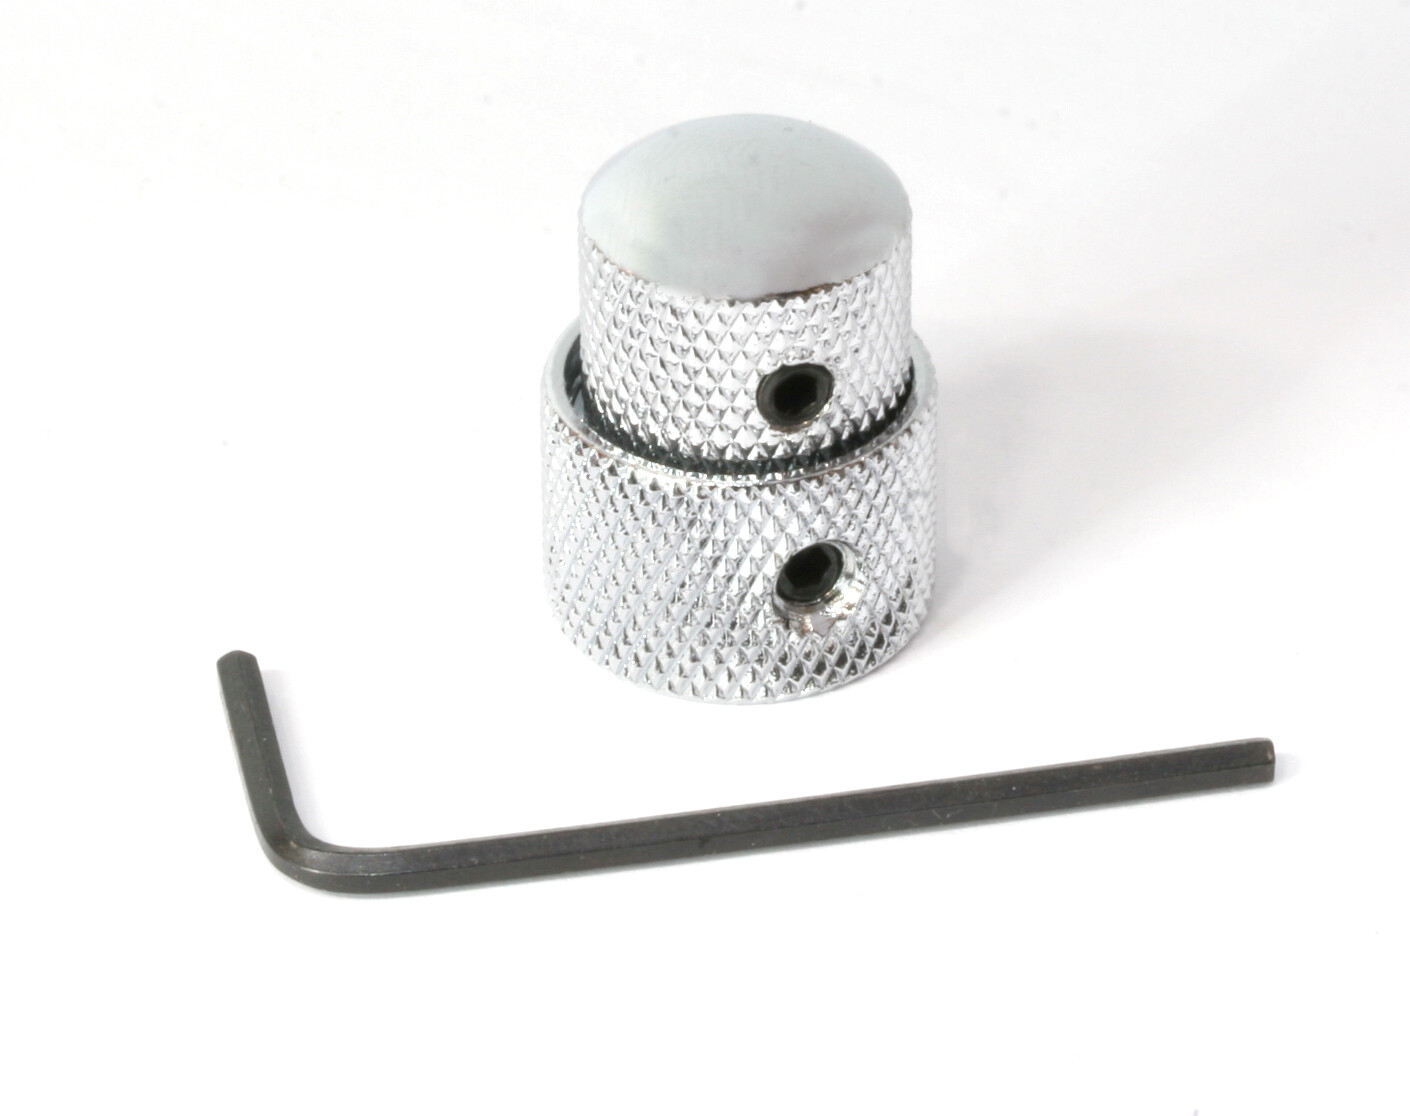 Chrome Concentric stacked knob set, with set screws, fits Metric